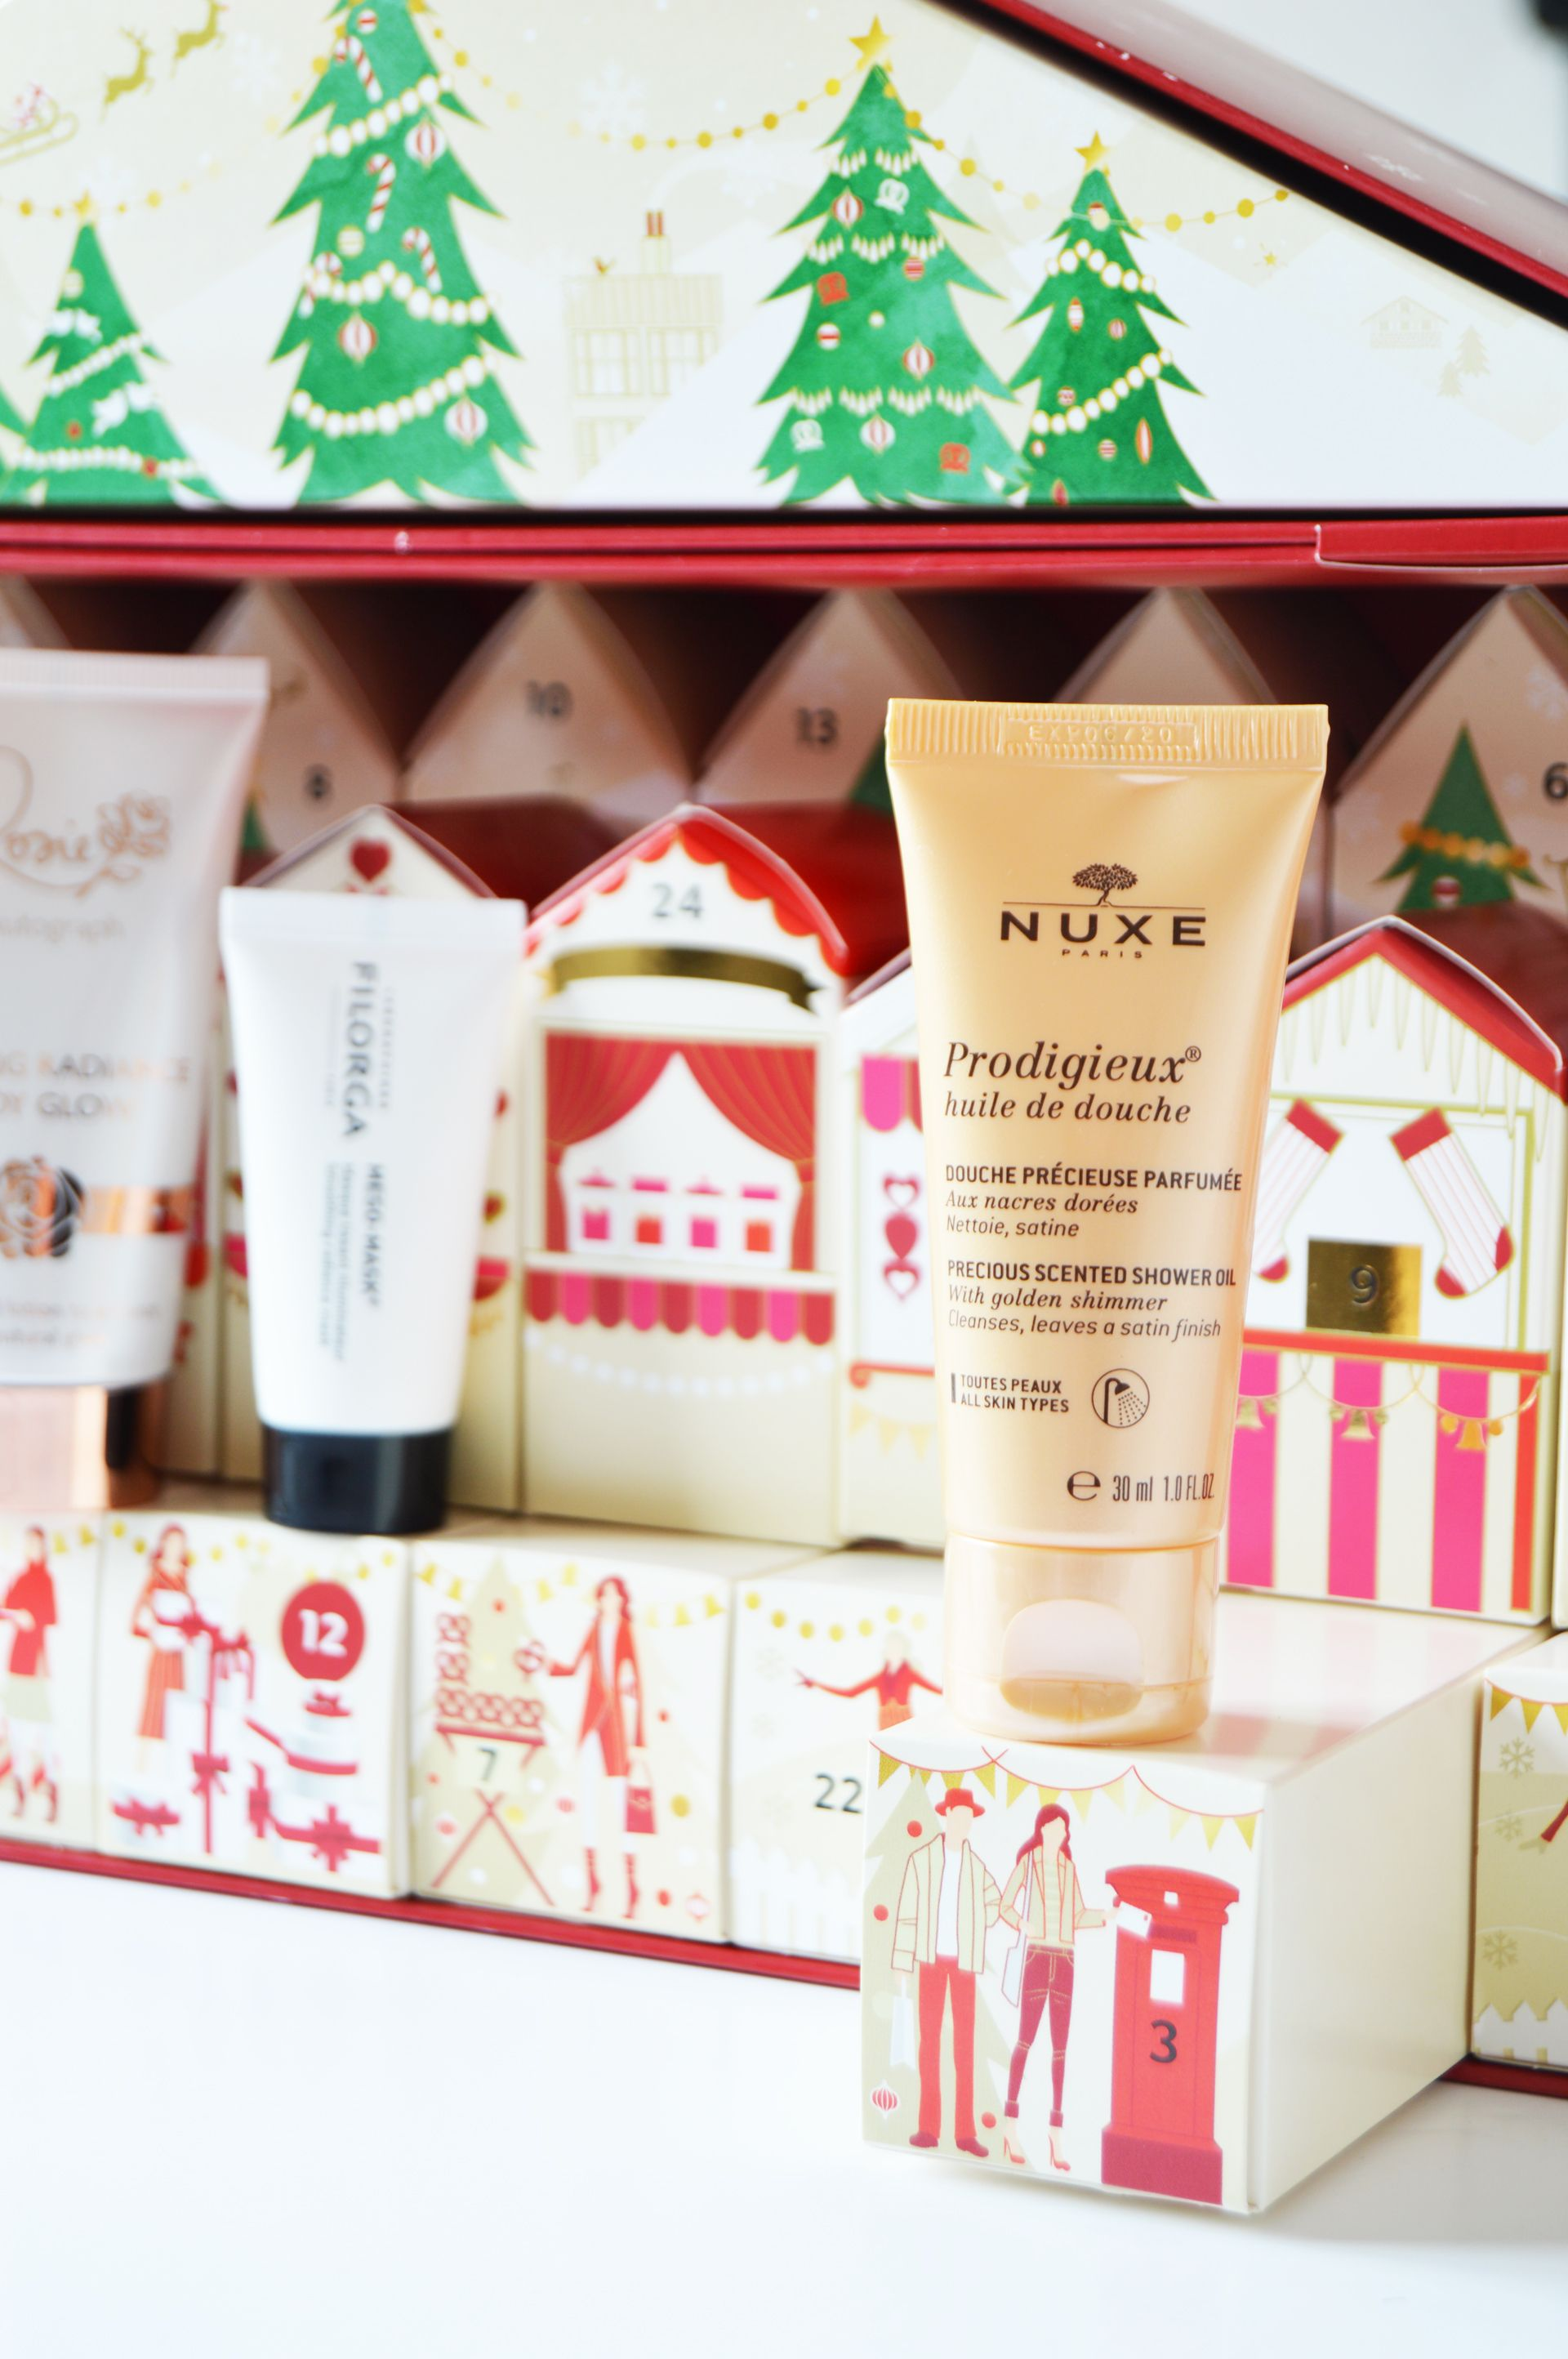 Nuxe Prodigieux Shower Oil gently cleanses the body and leaves a satin finish with a divine fragrance. M&S Advent Calendar